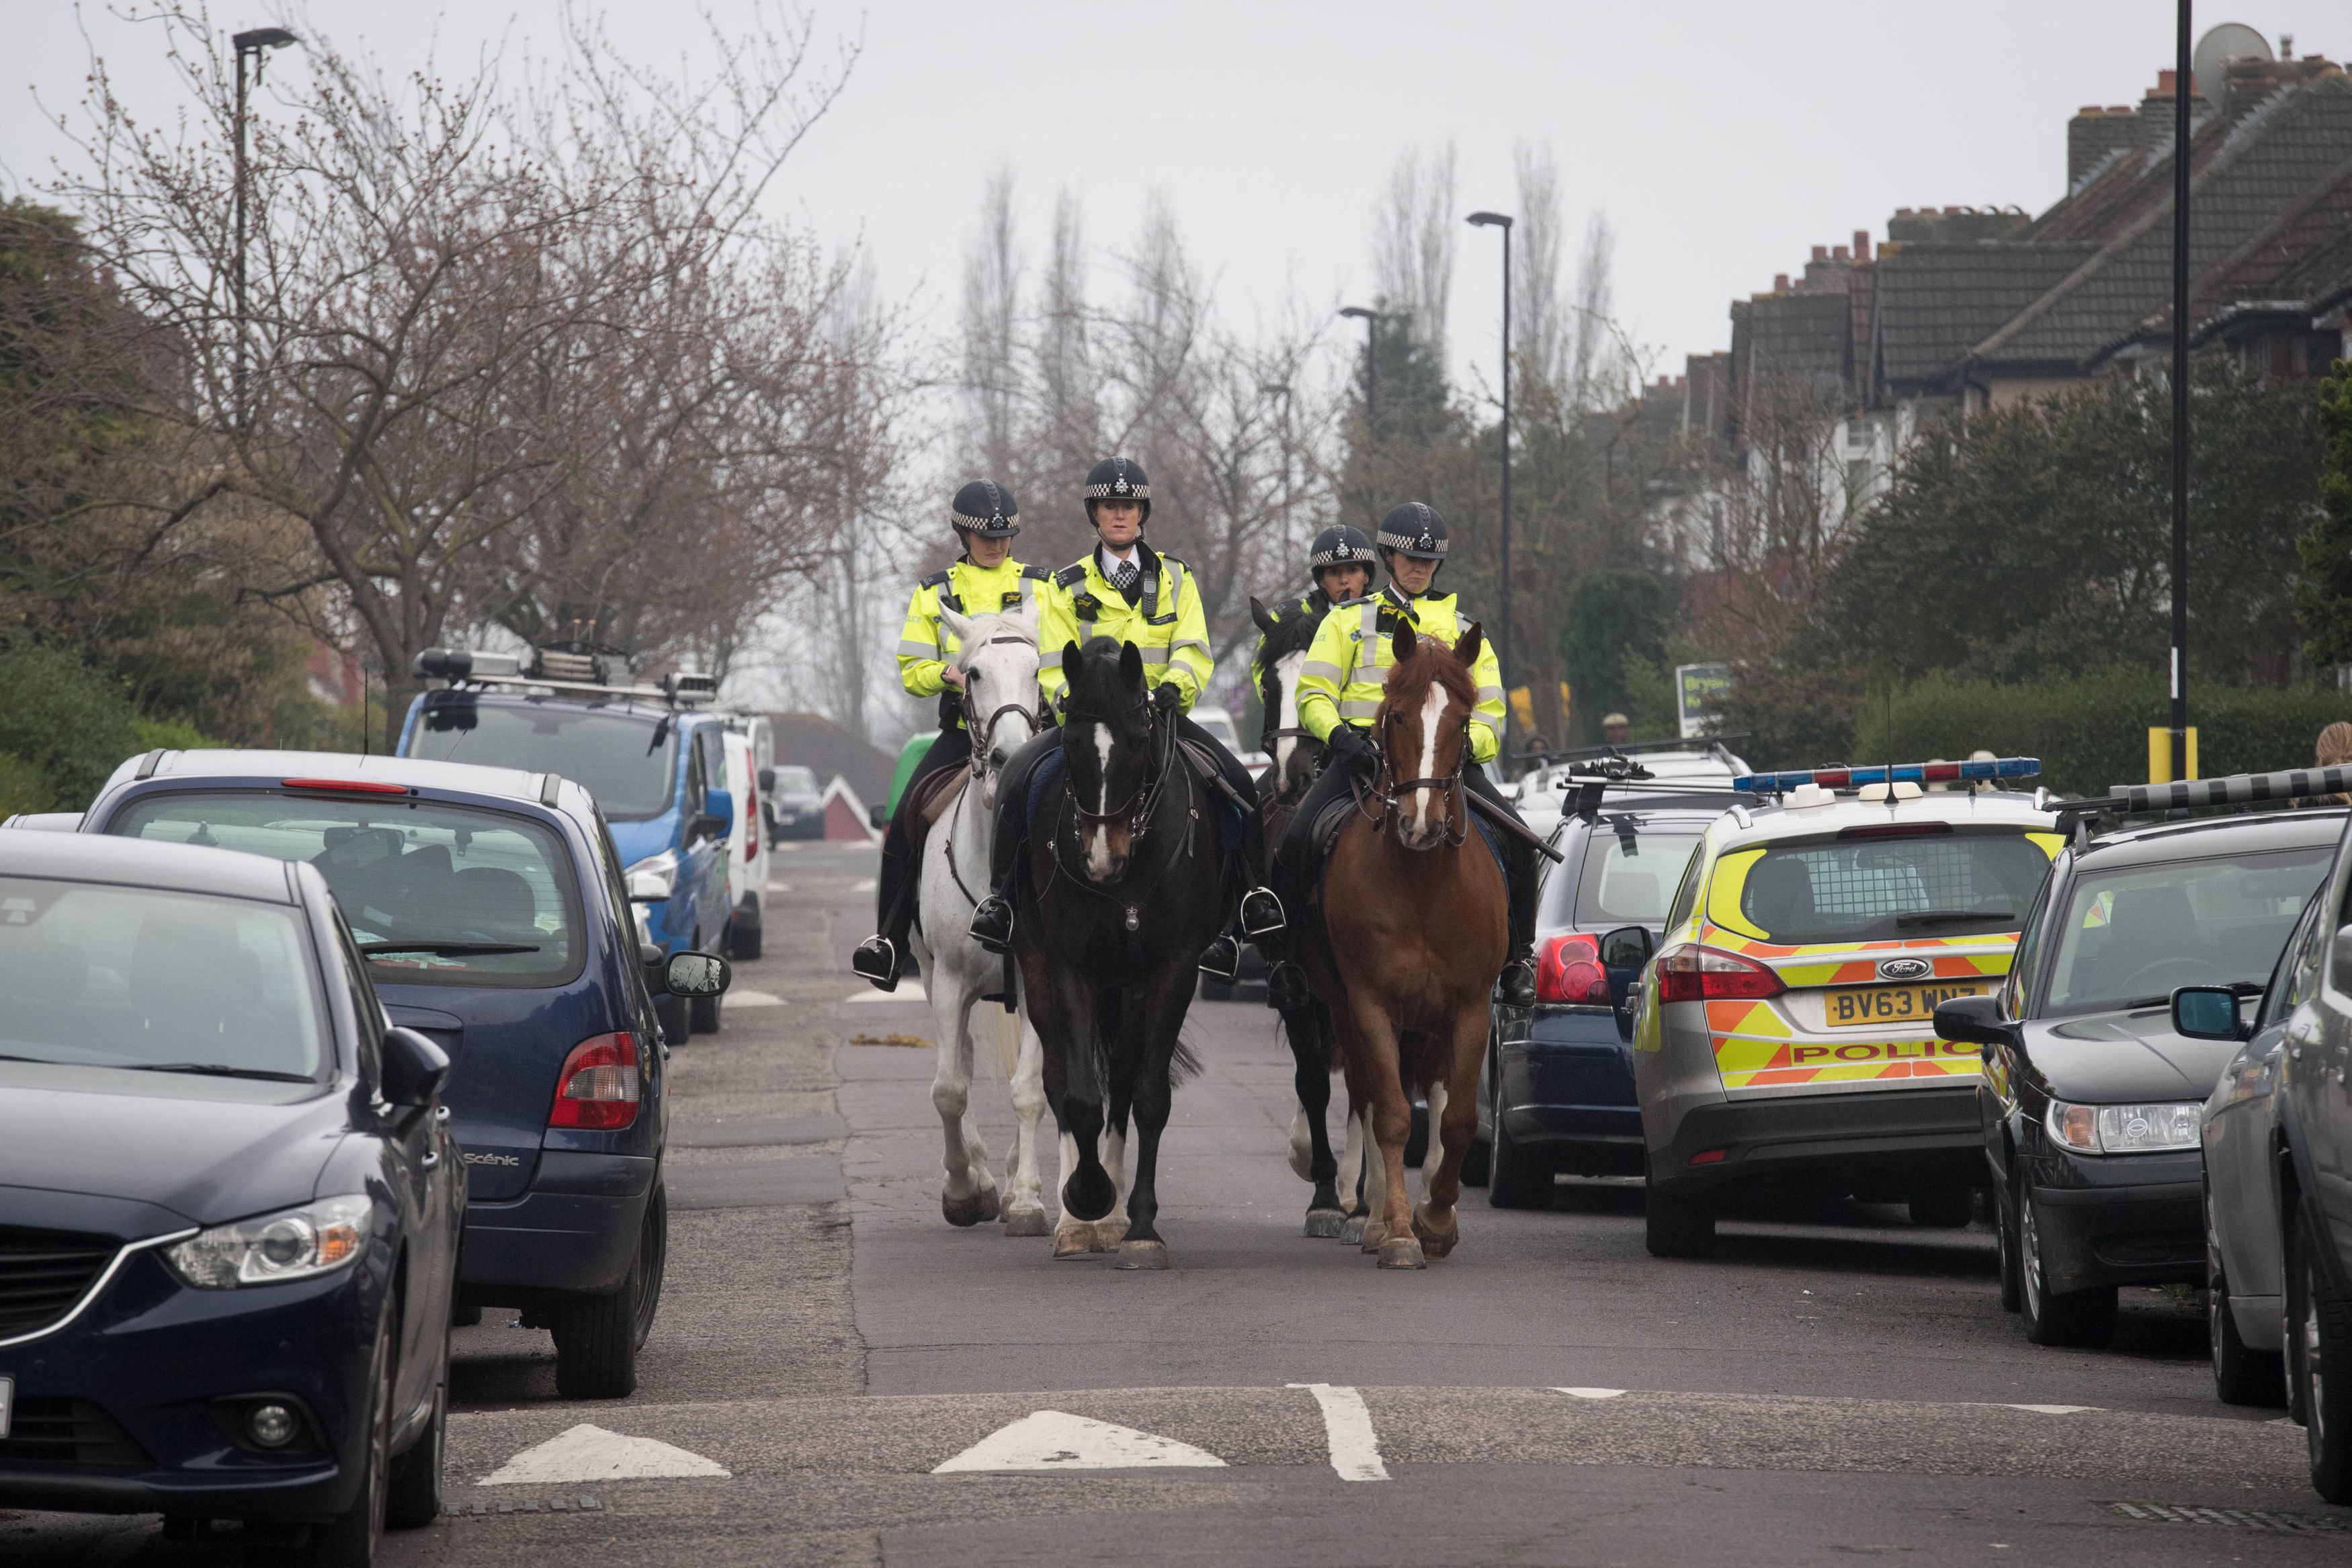 Police patrol the streets in Hither Green. Credit: PA